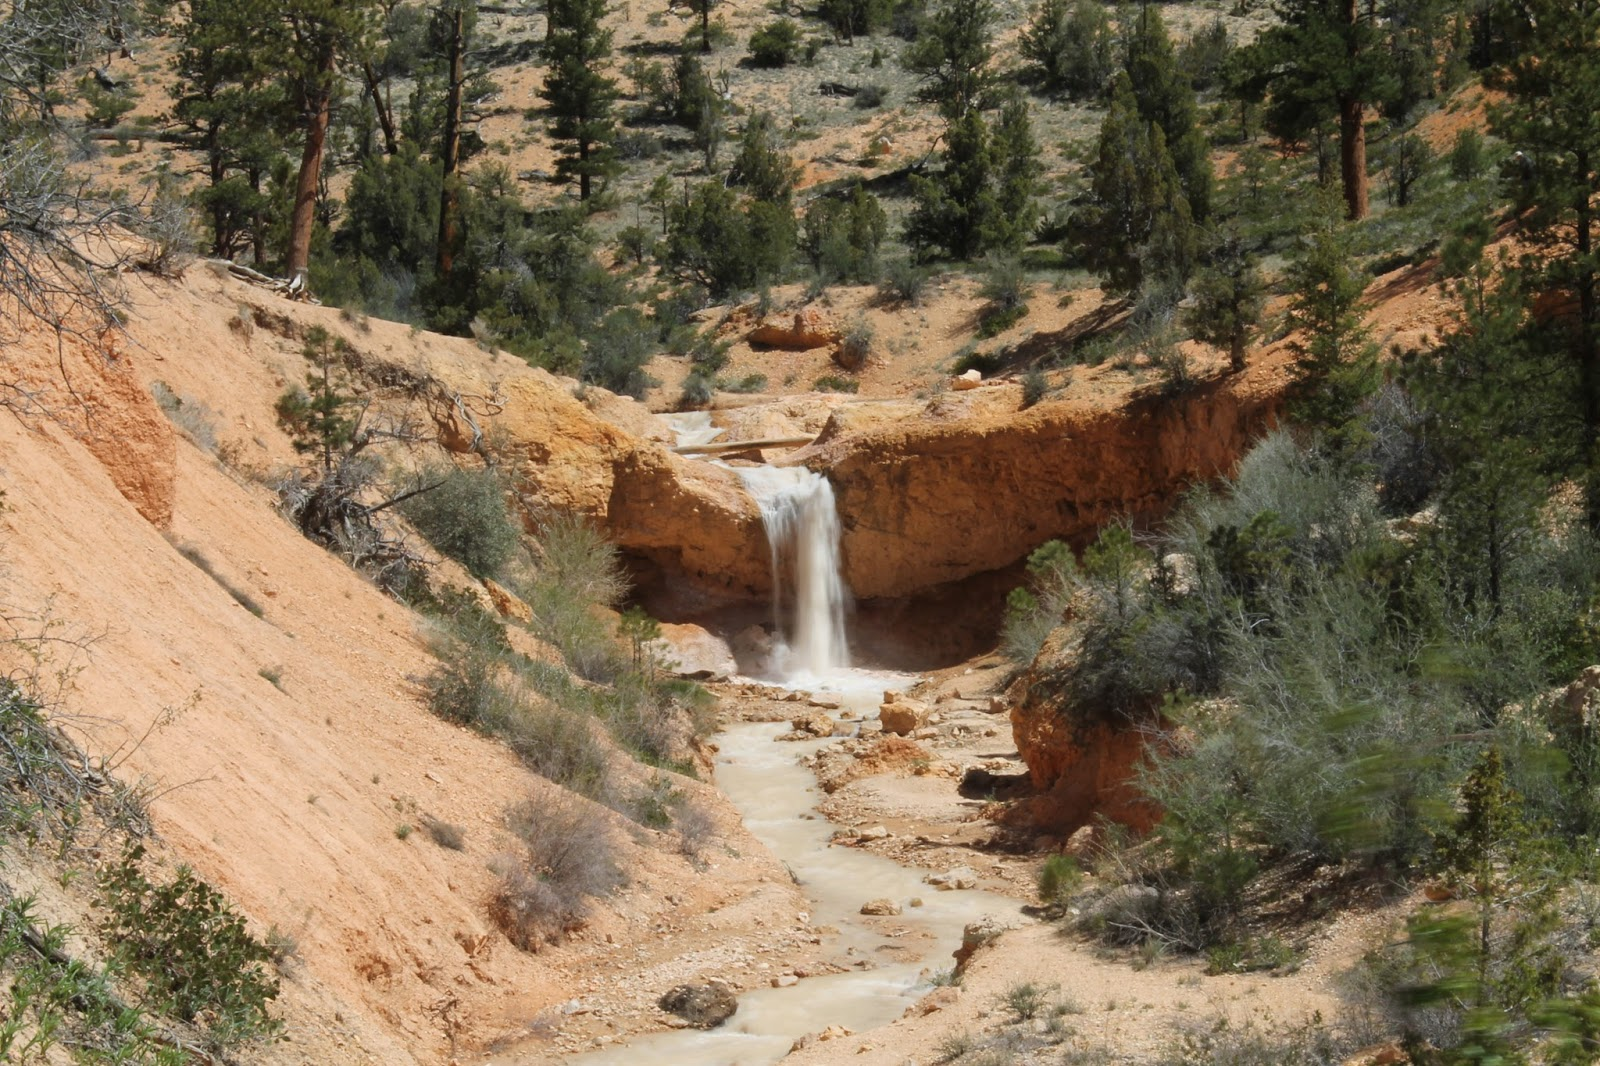 Discoveries: Bryce Canyon, Mossy Cave, Sandberg Ranch